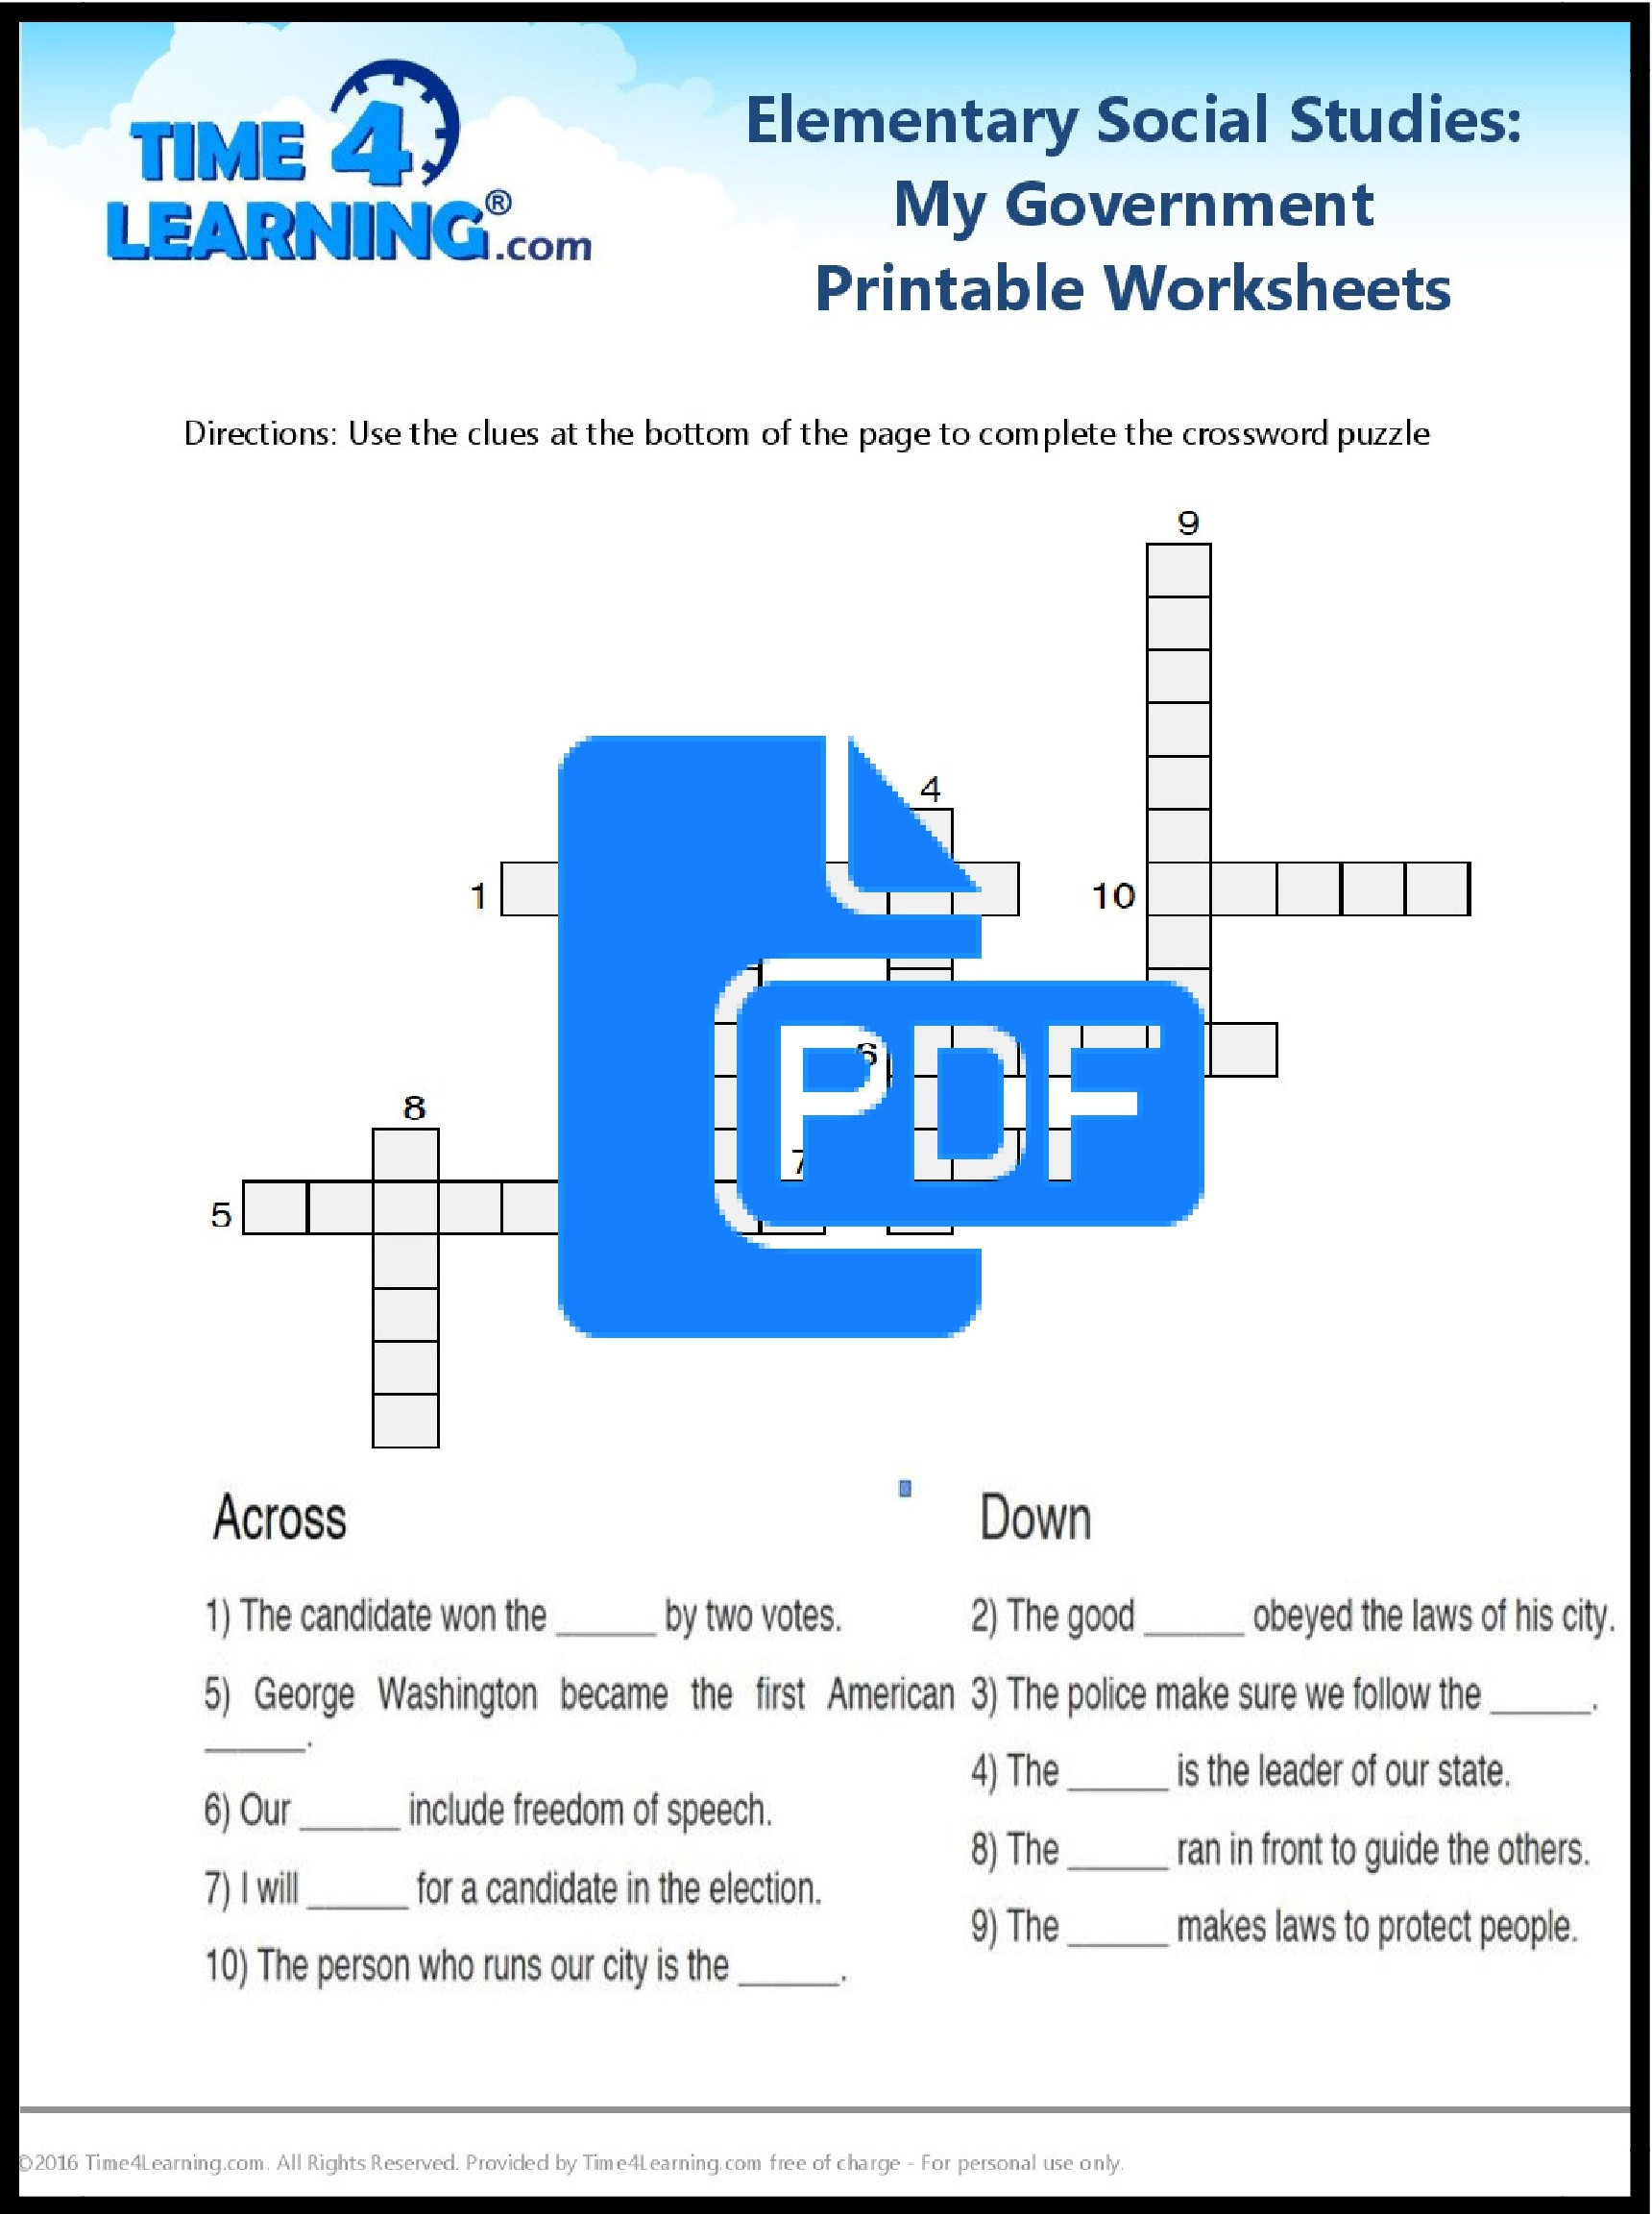 First Grade History Worksheets Free Printable Elementary social Stu S Worksheet